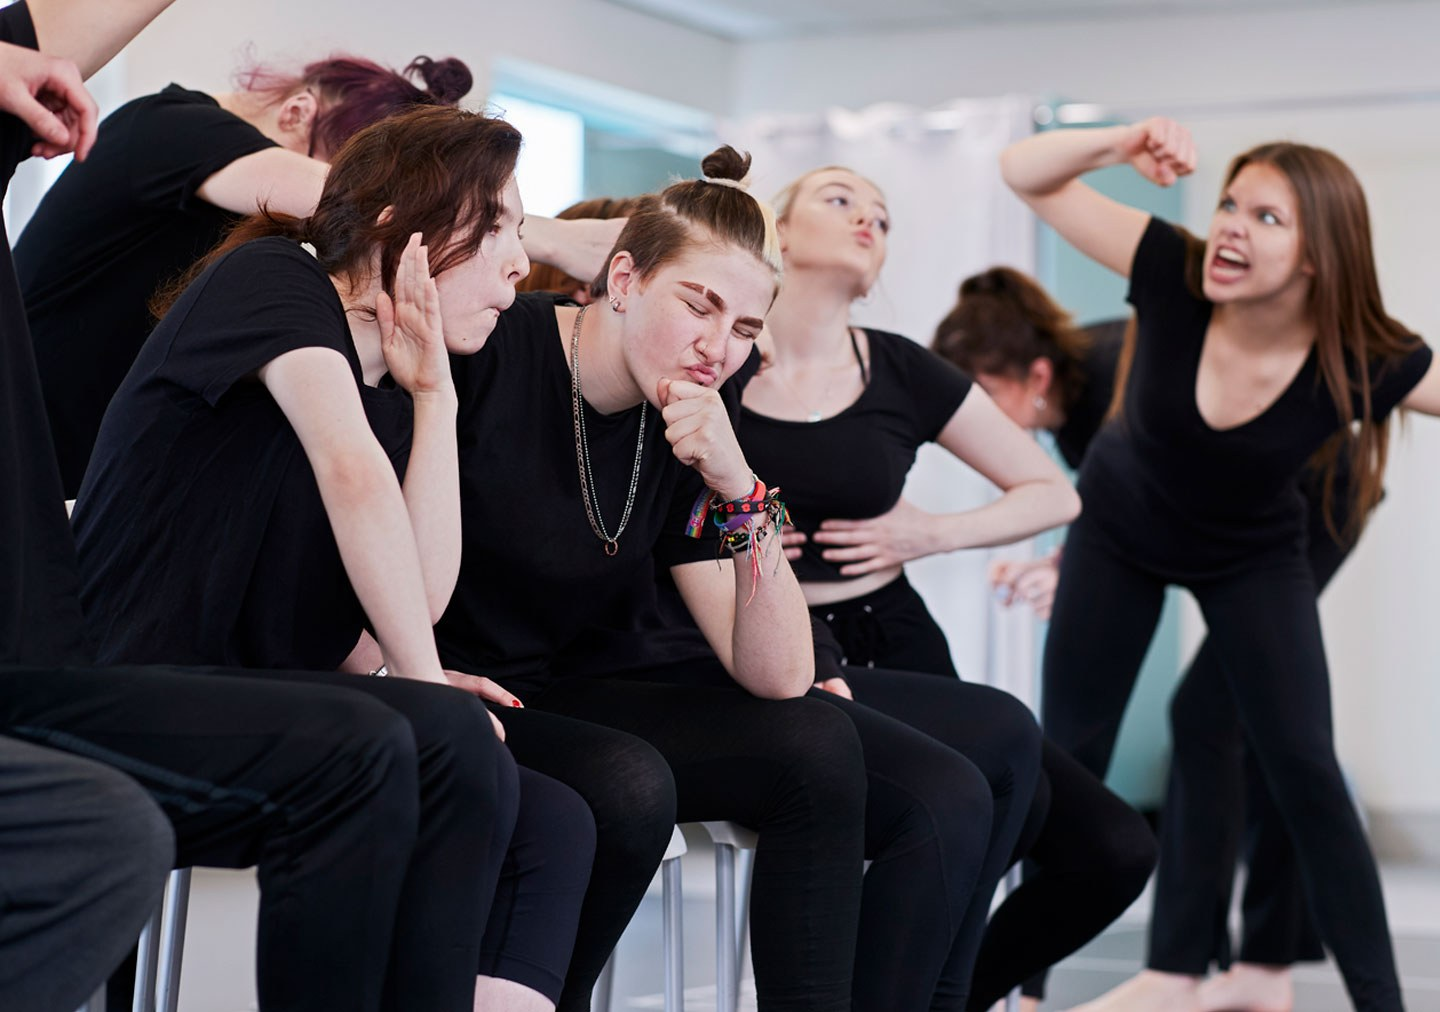 Students in perfromance and production workshop working on movement and facial expressions